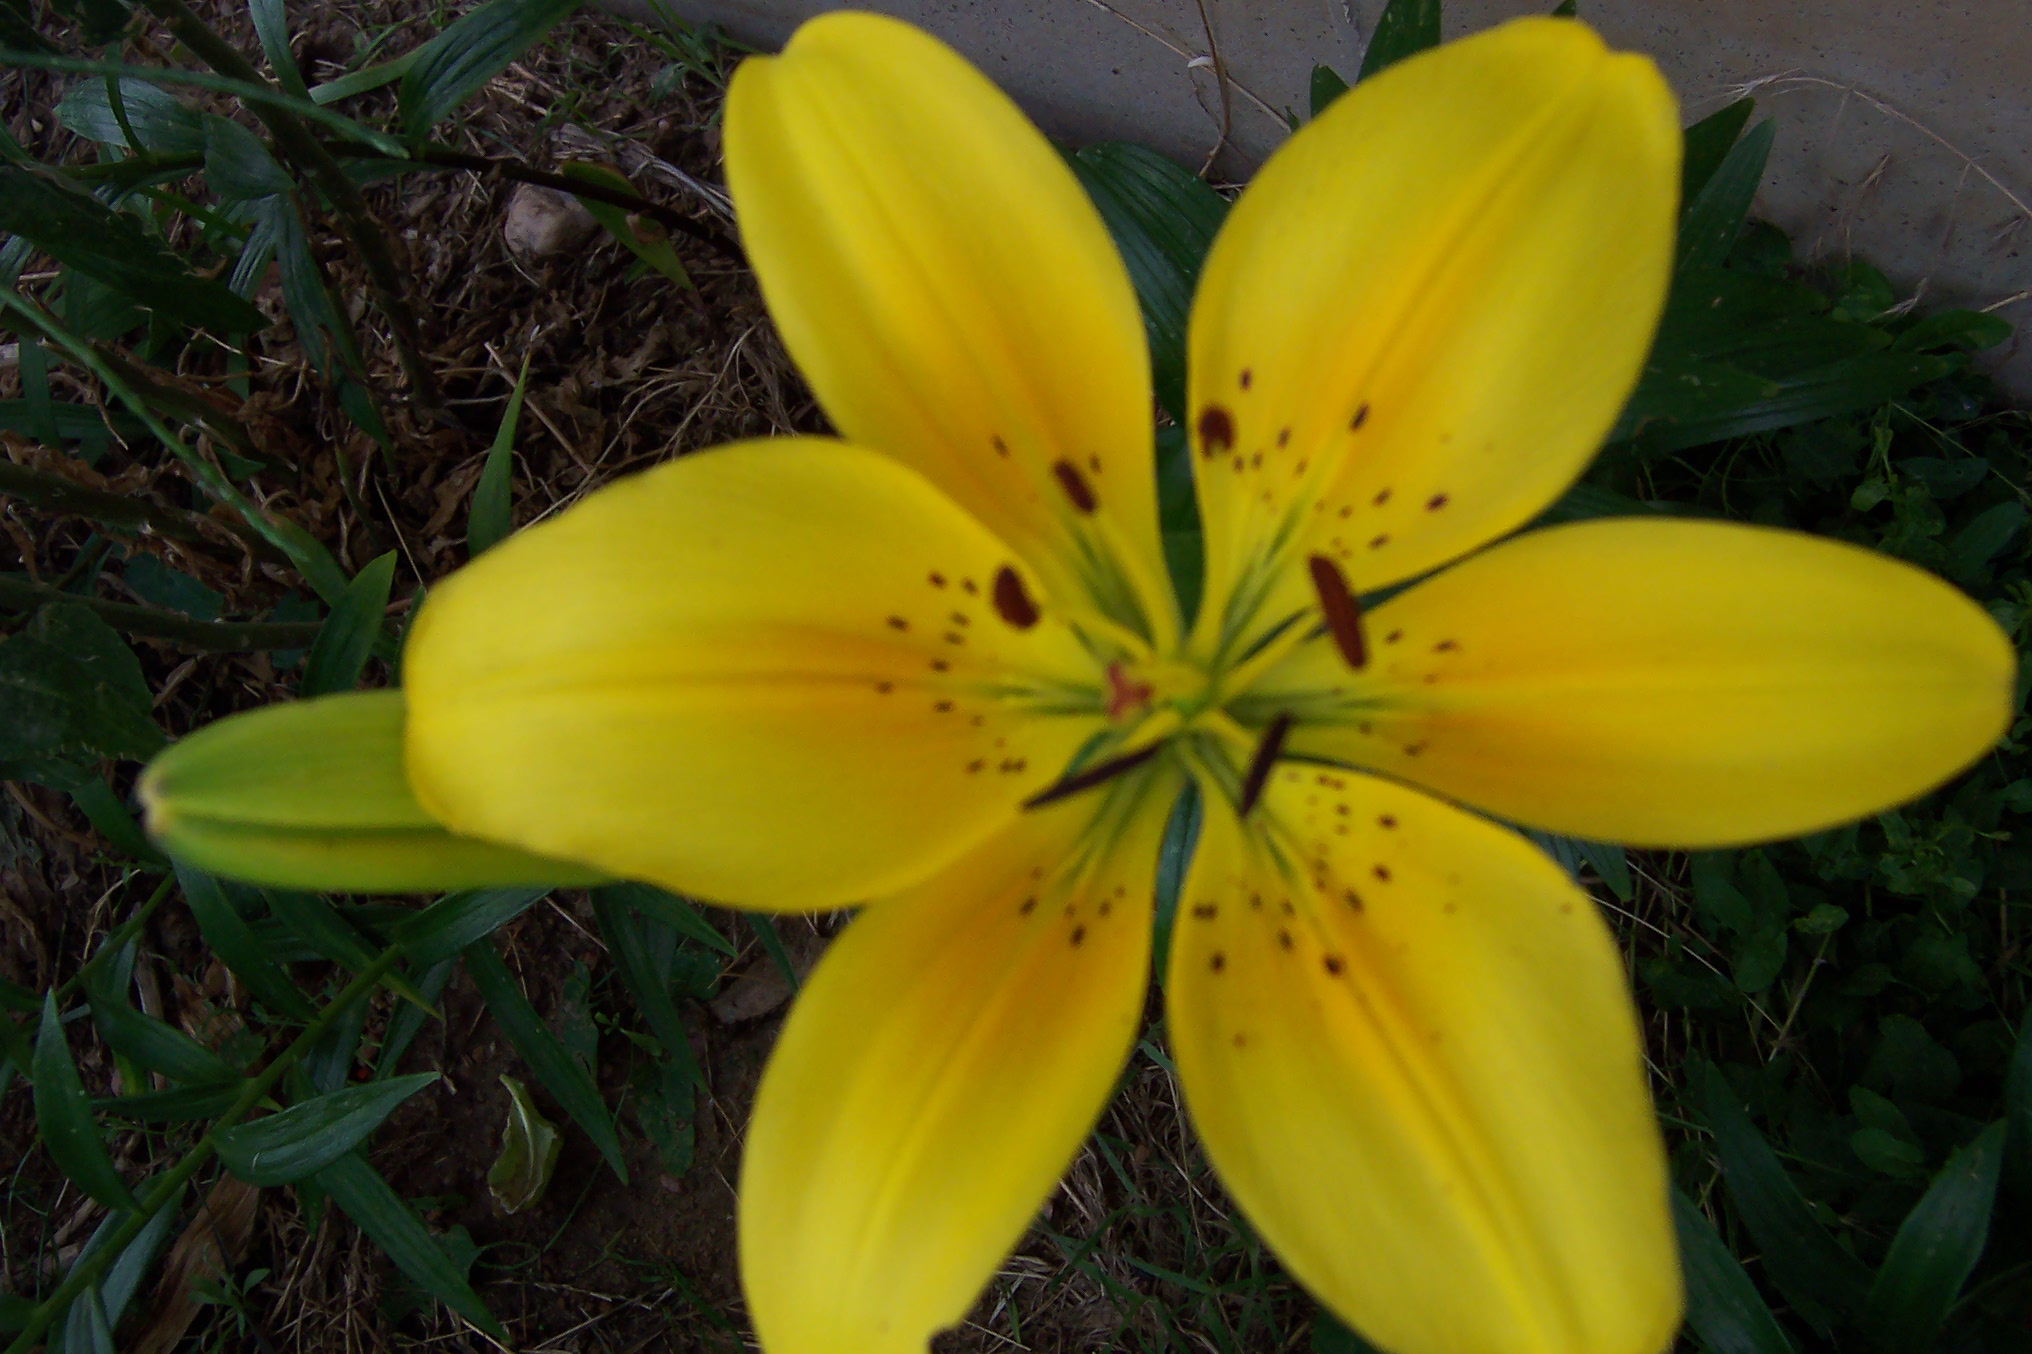 Lilies and spanish life transplanet what izmirmasajfo